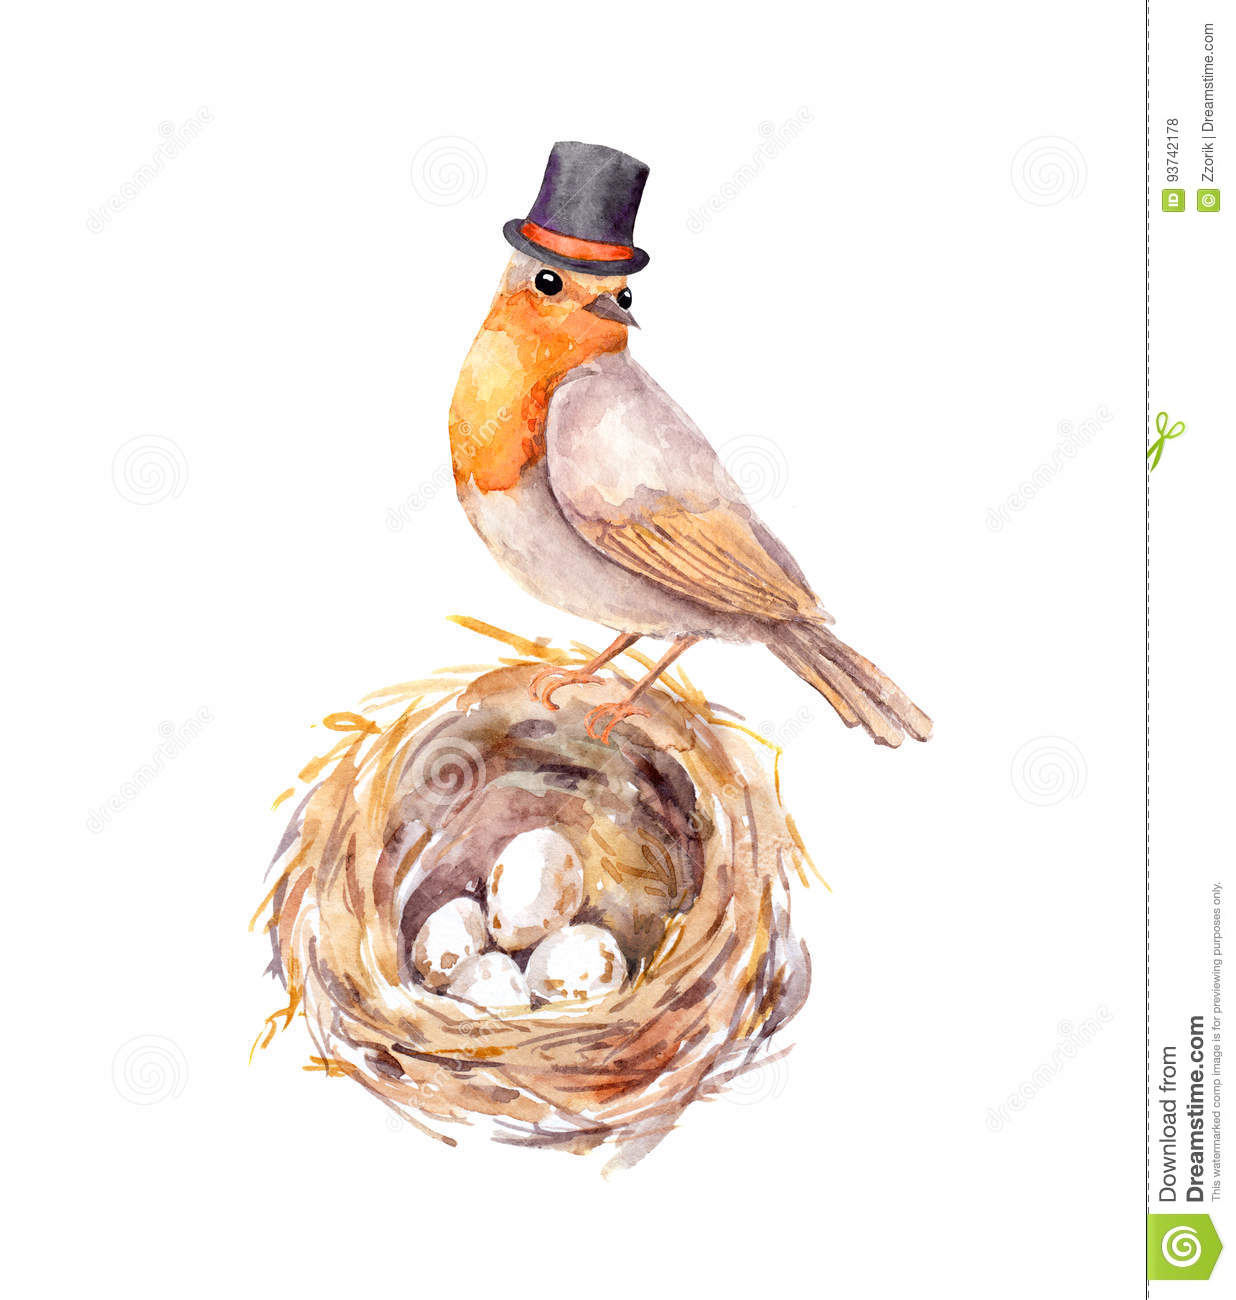 Free Birdsnest Cliparts, Download Free Clip Art, Free Clip Art on Clipart  Library